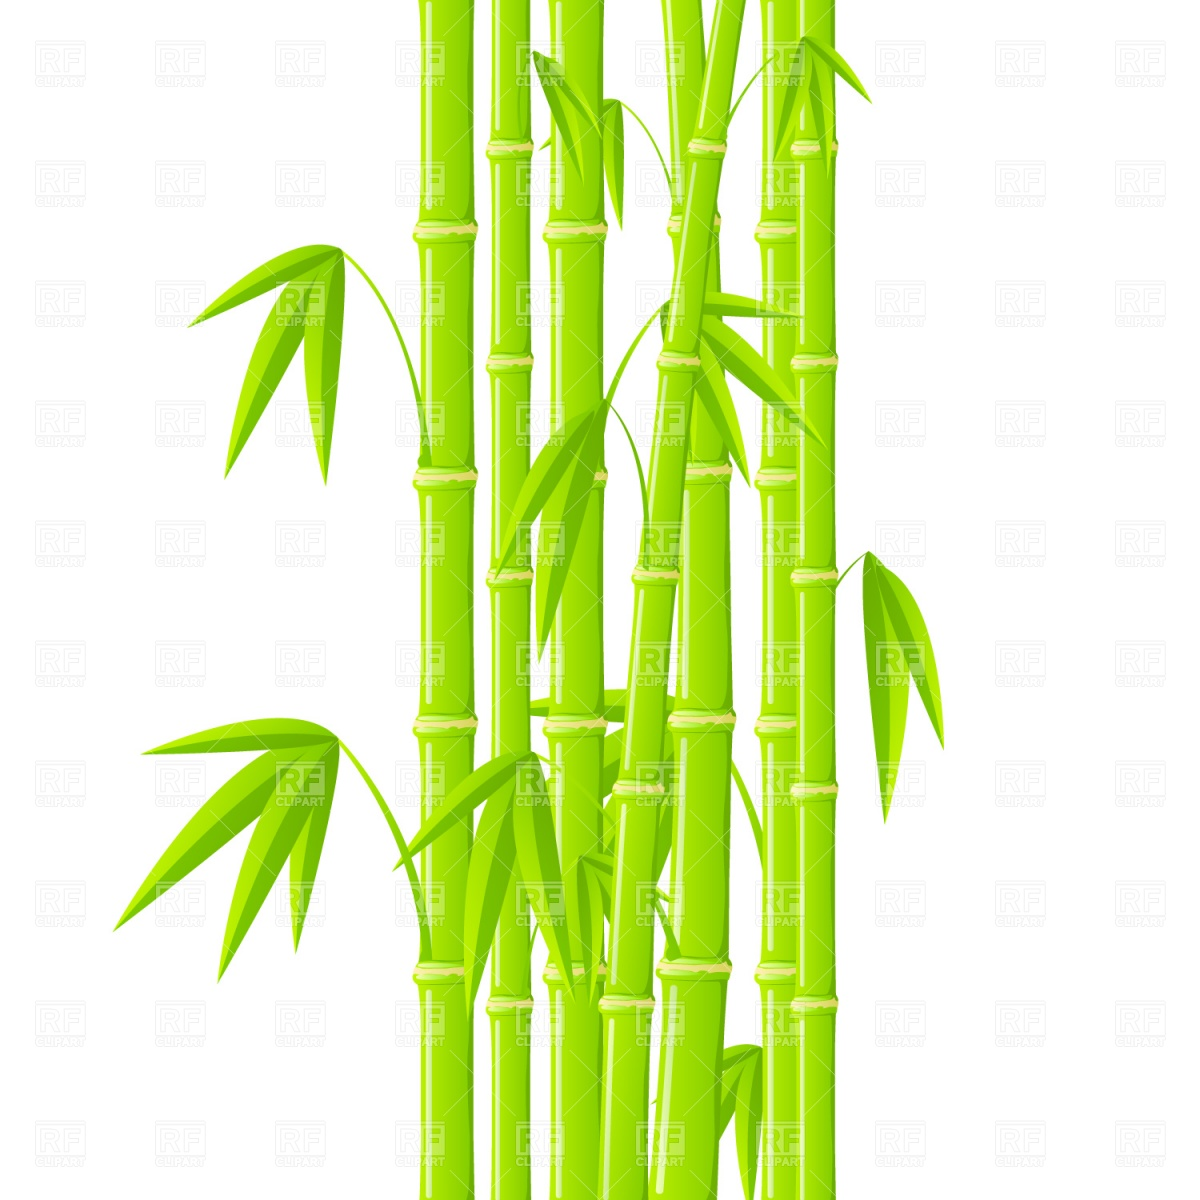 Green Bamboo Stems With Leaves Download -Green Bamboo Stems With Leaves Download Royalty Free Vector Clipart-19